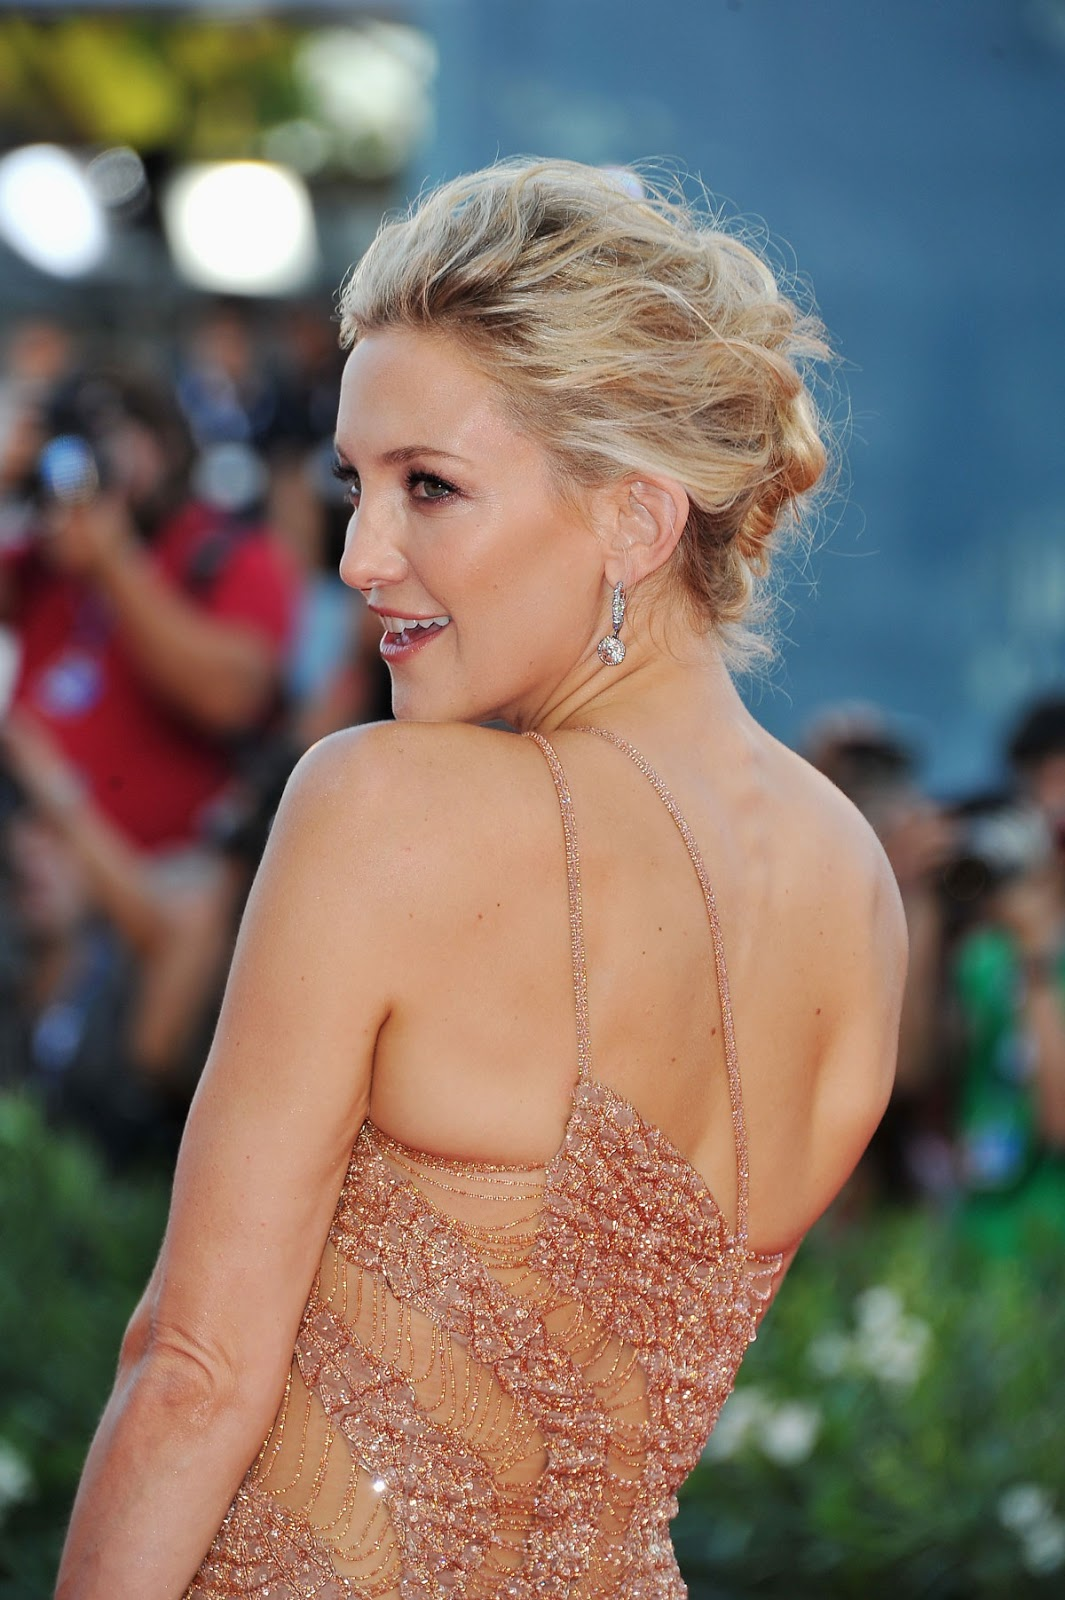 HQ Photos of Kate Hudson At The Reluctant Fundamentalist Premiere At The Venice Film Festival